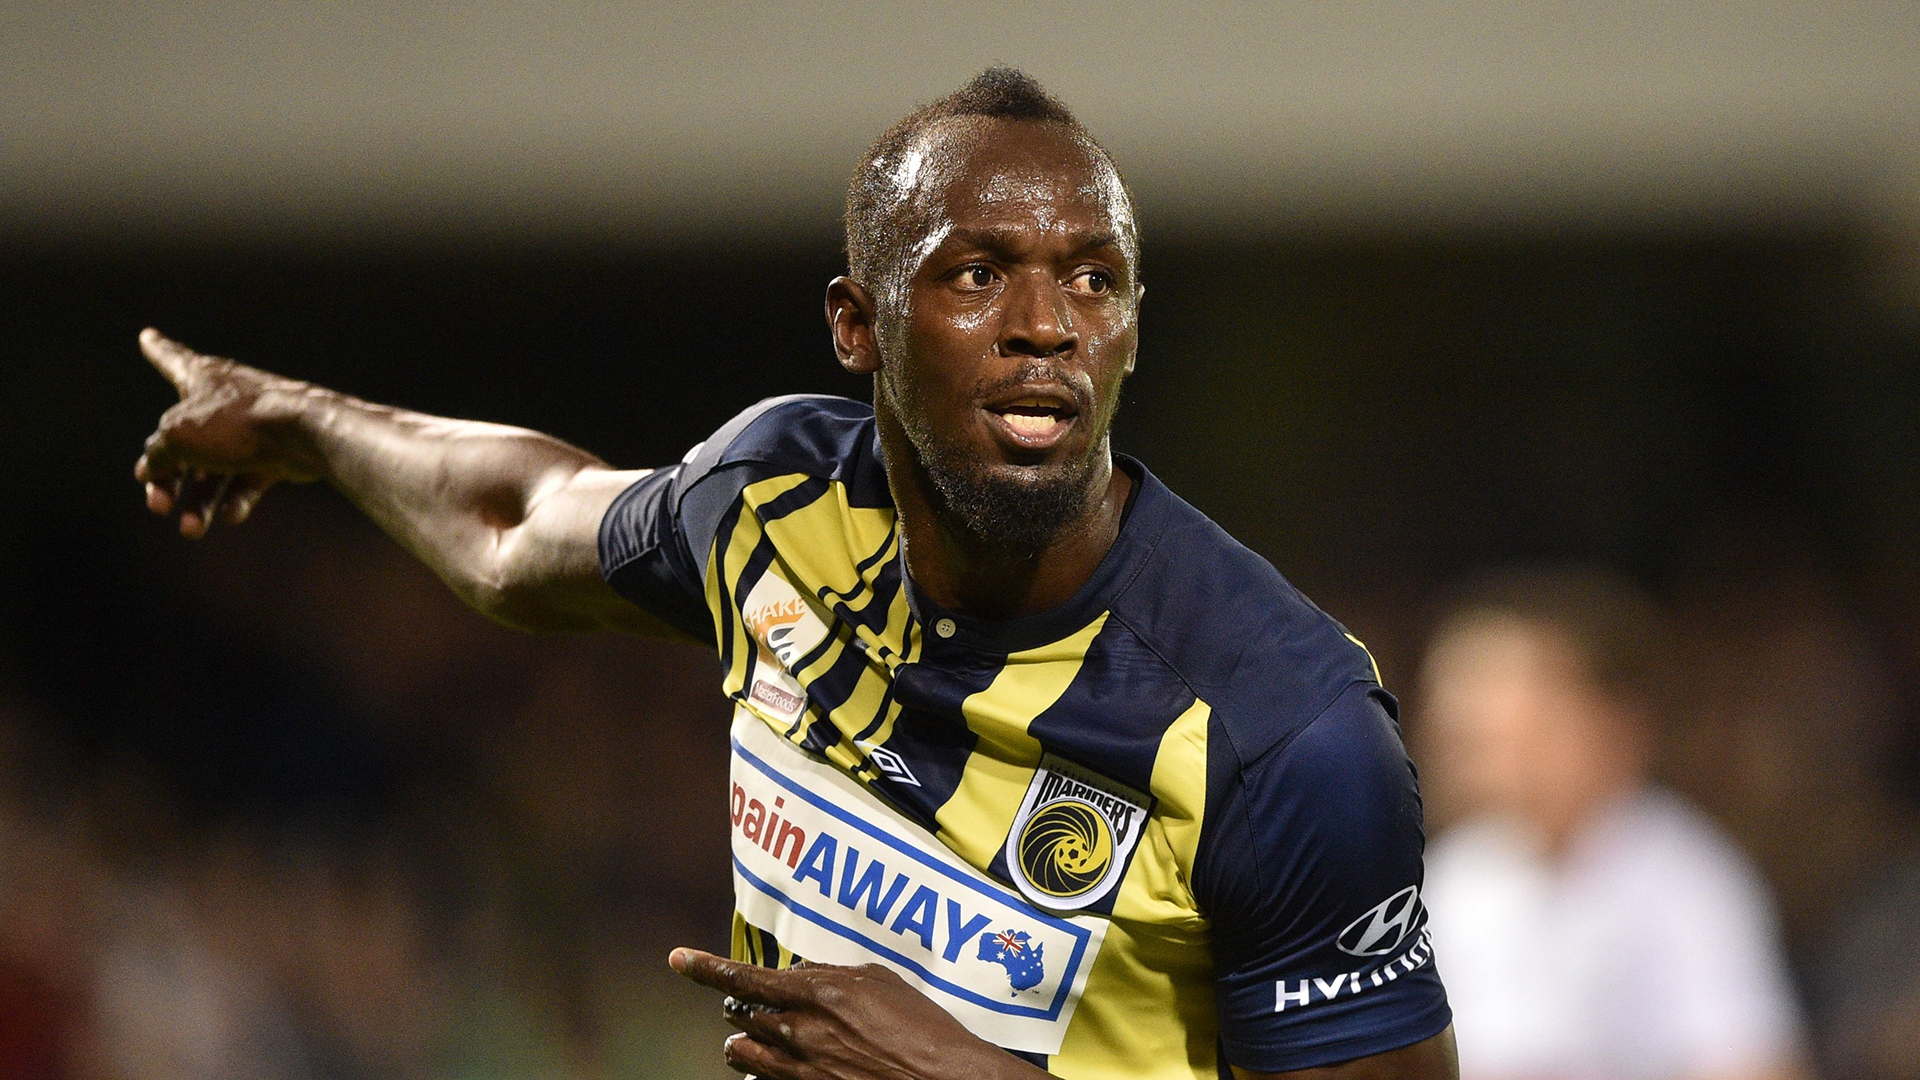 Usain Bolt rejects Central Coast Mariners contract, quits A-League trial